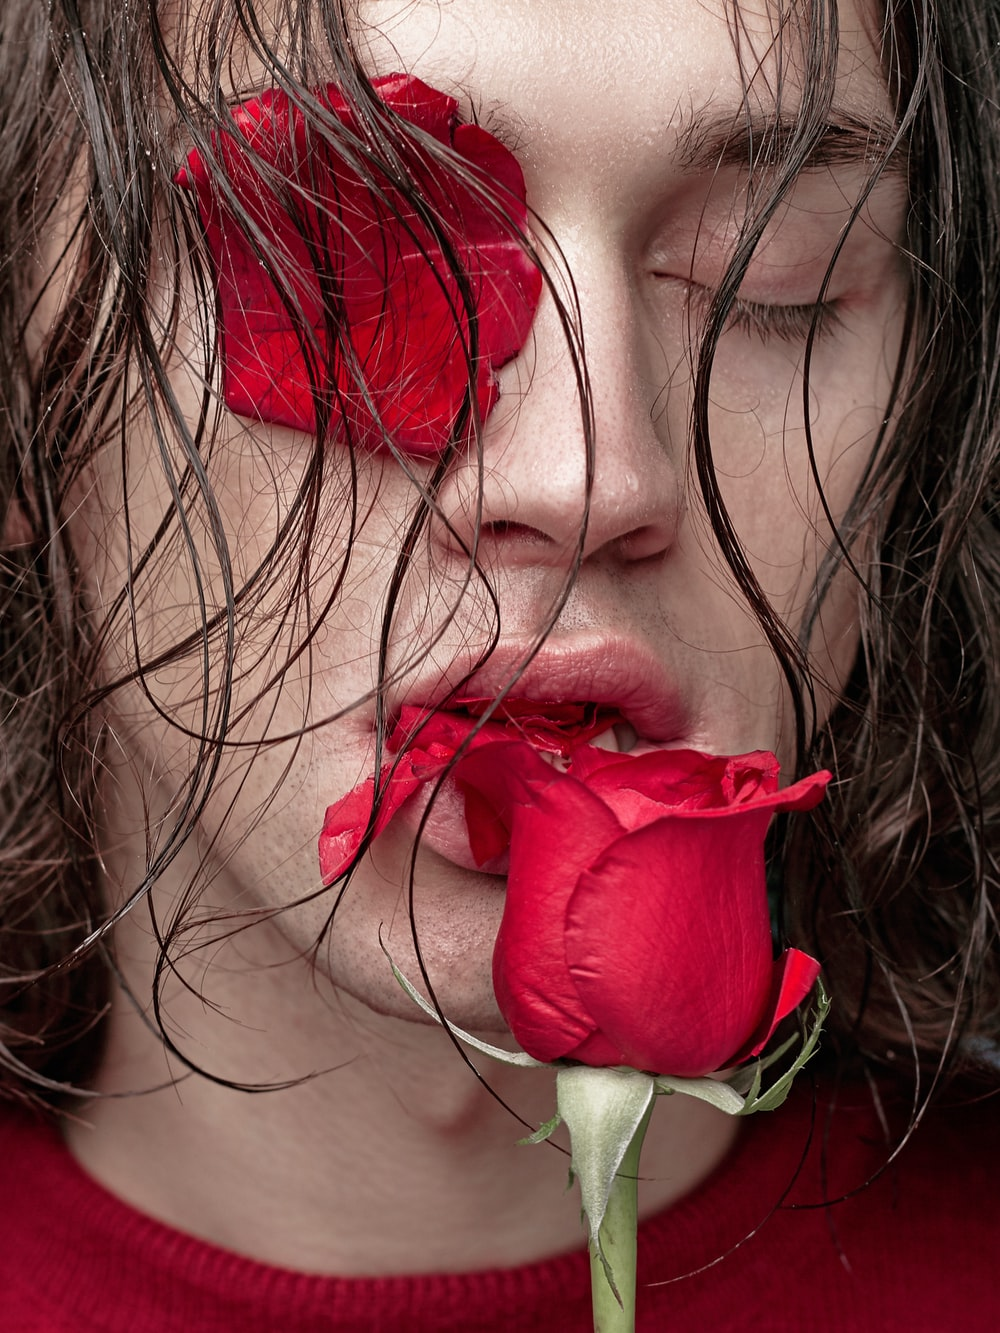 unknown person biting red rose flower